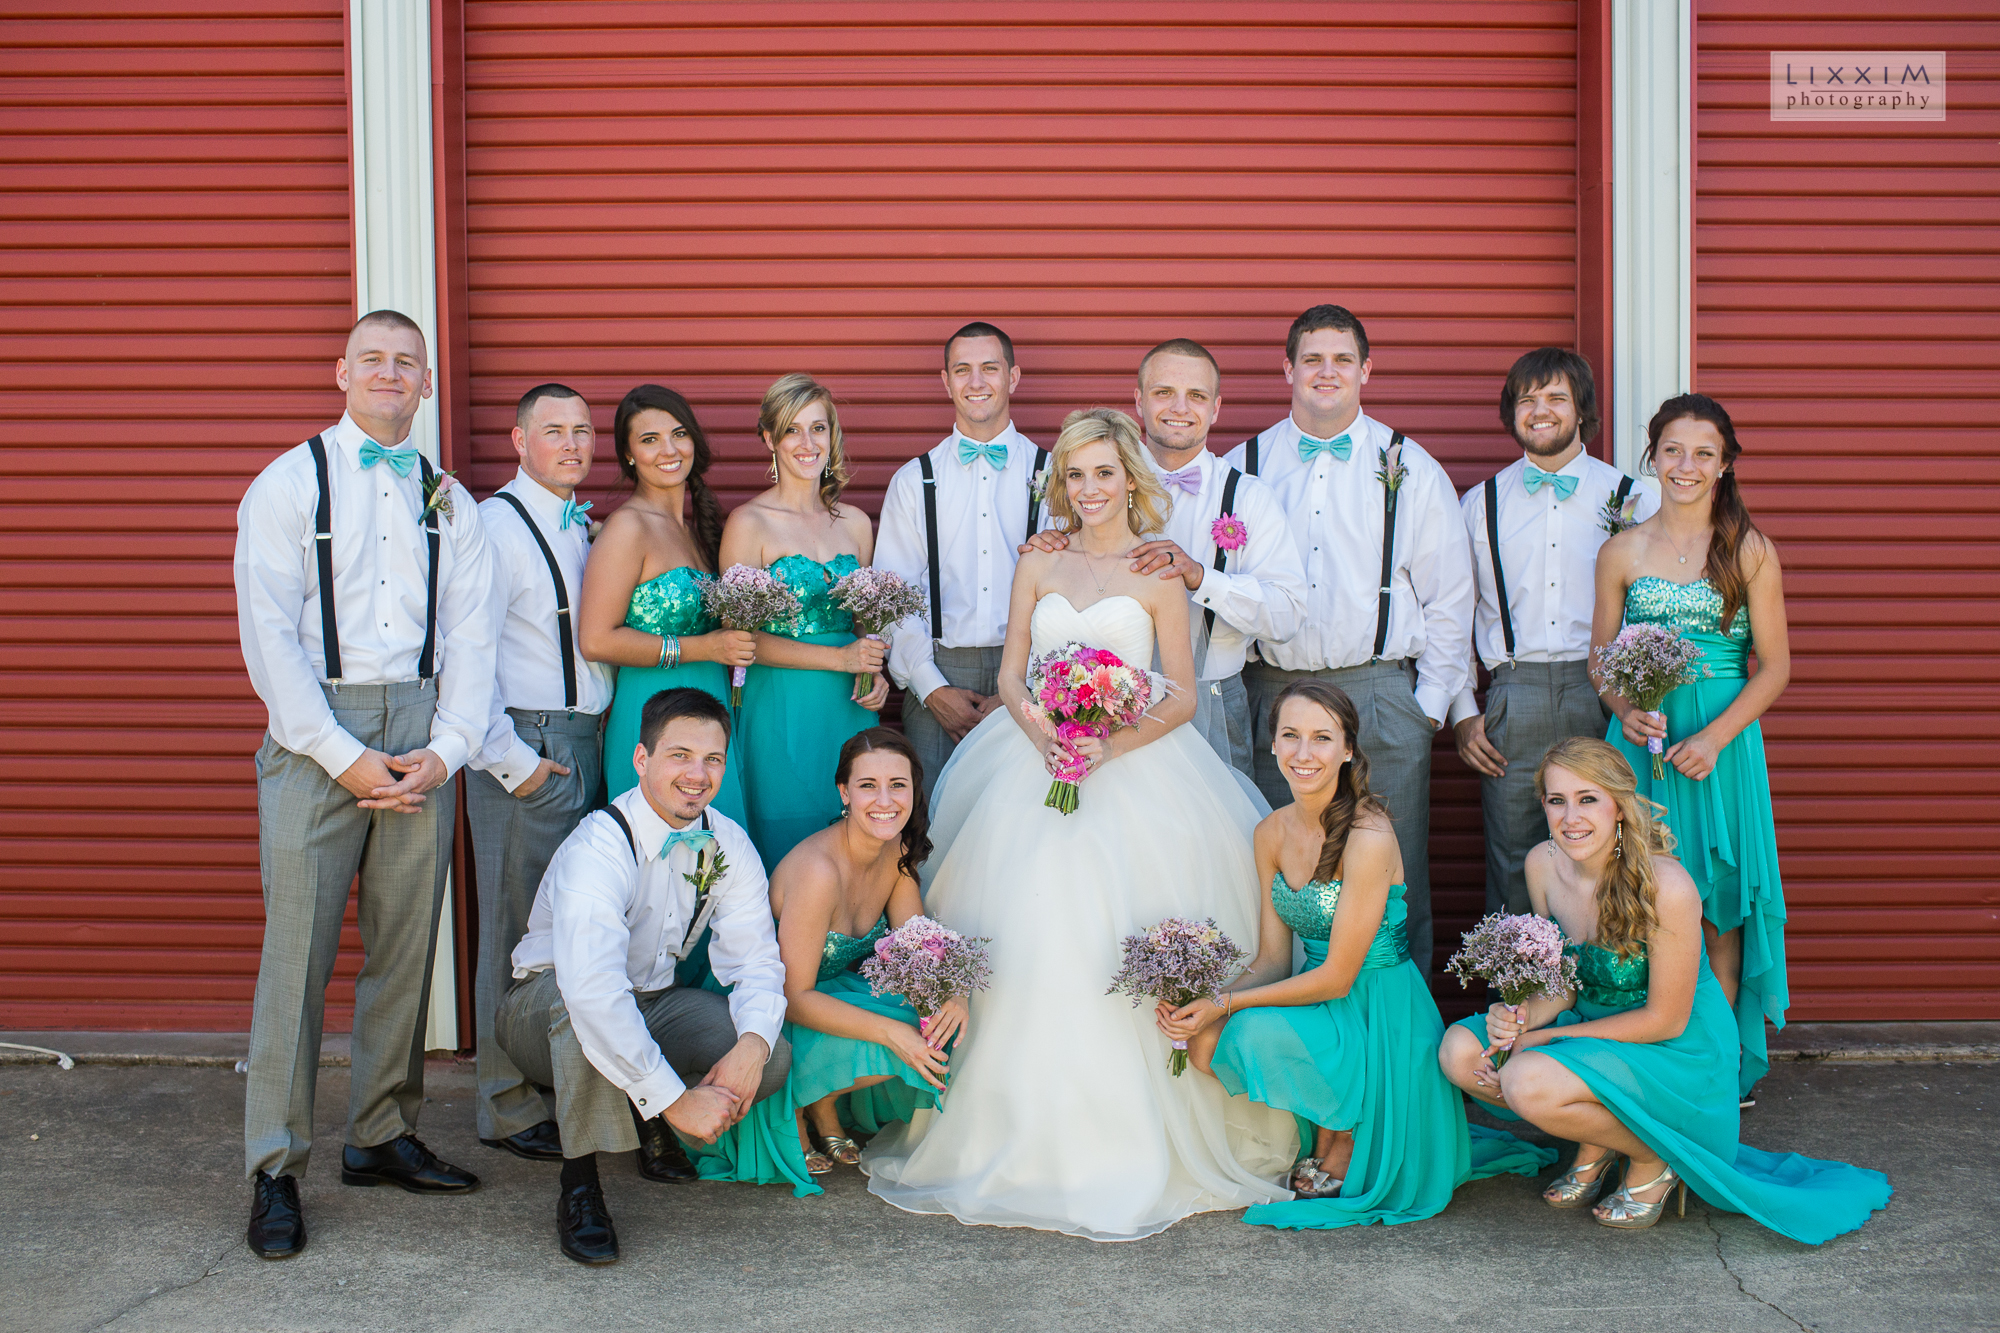 sacramento-wedding-photographer-bridal-party-waiting-red-garage-doors.jpg